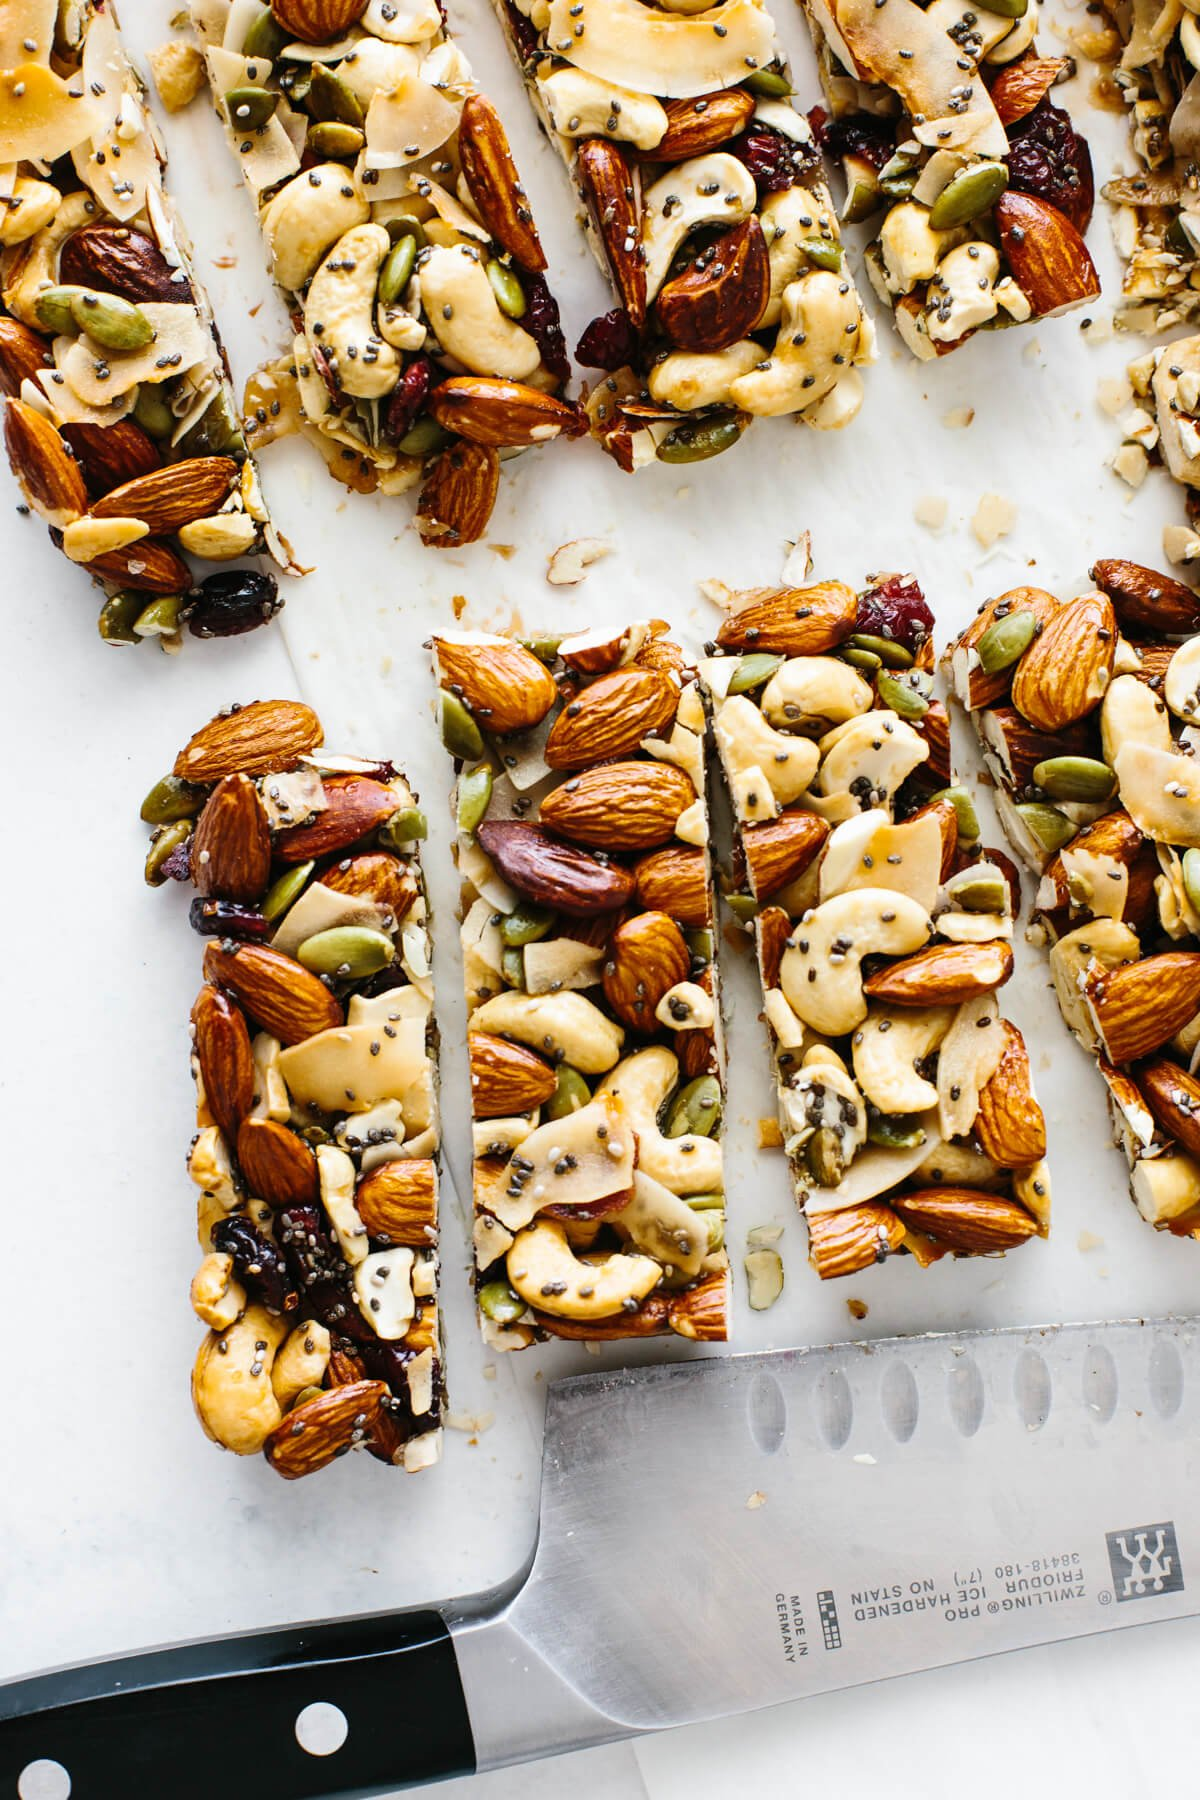 Trail mix bars cut into individual bars next to a knife.